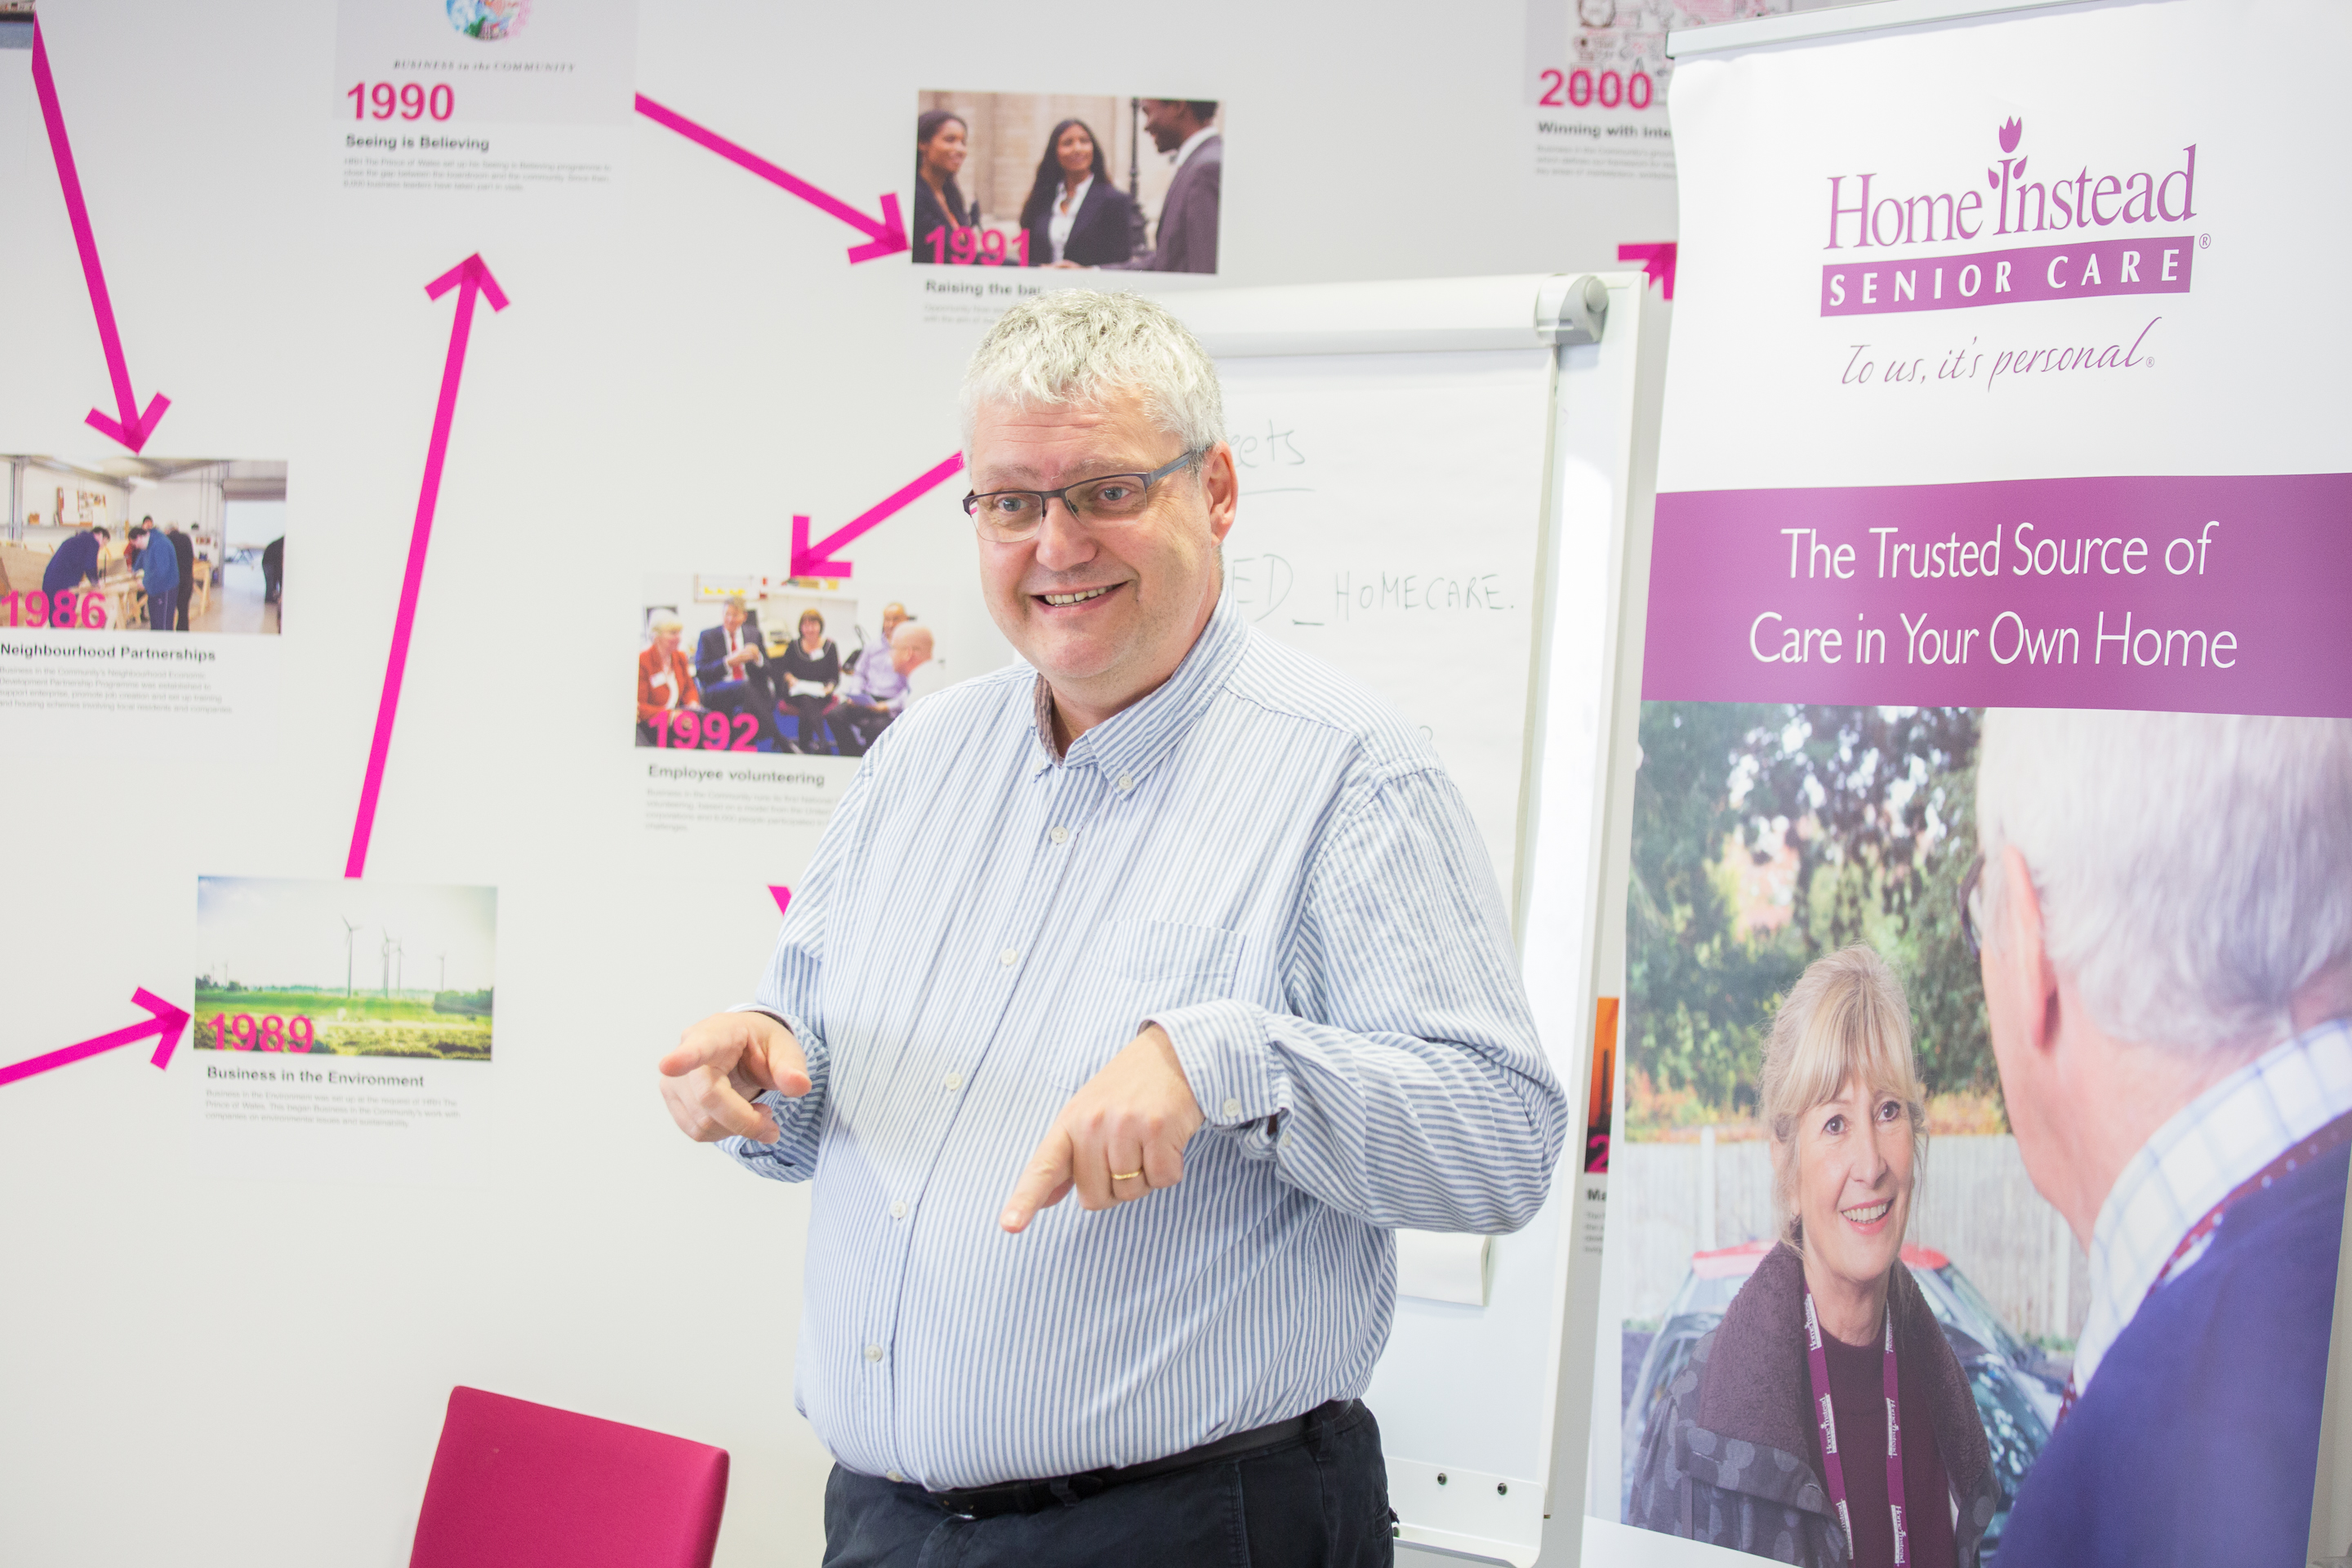 leader giving talk about Home Instead award winning homecare